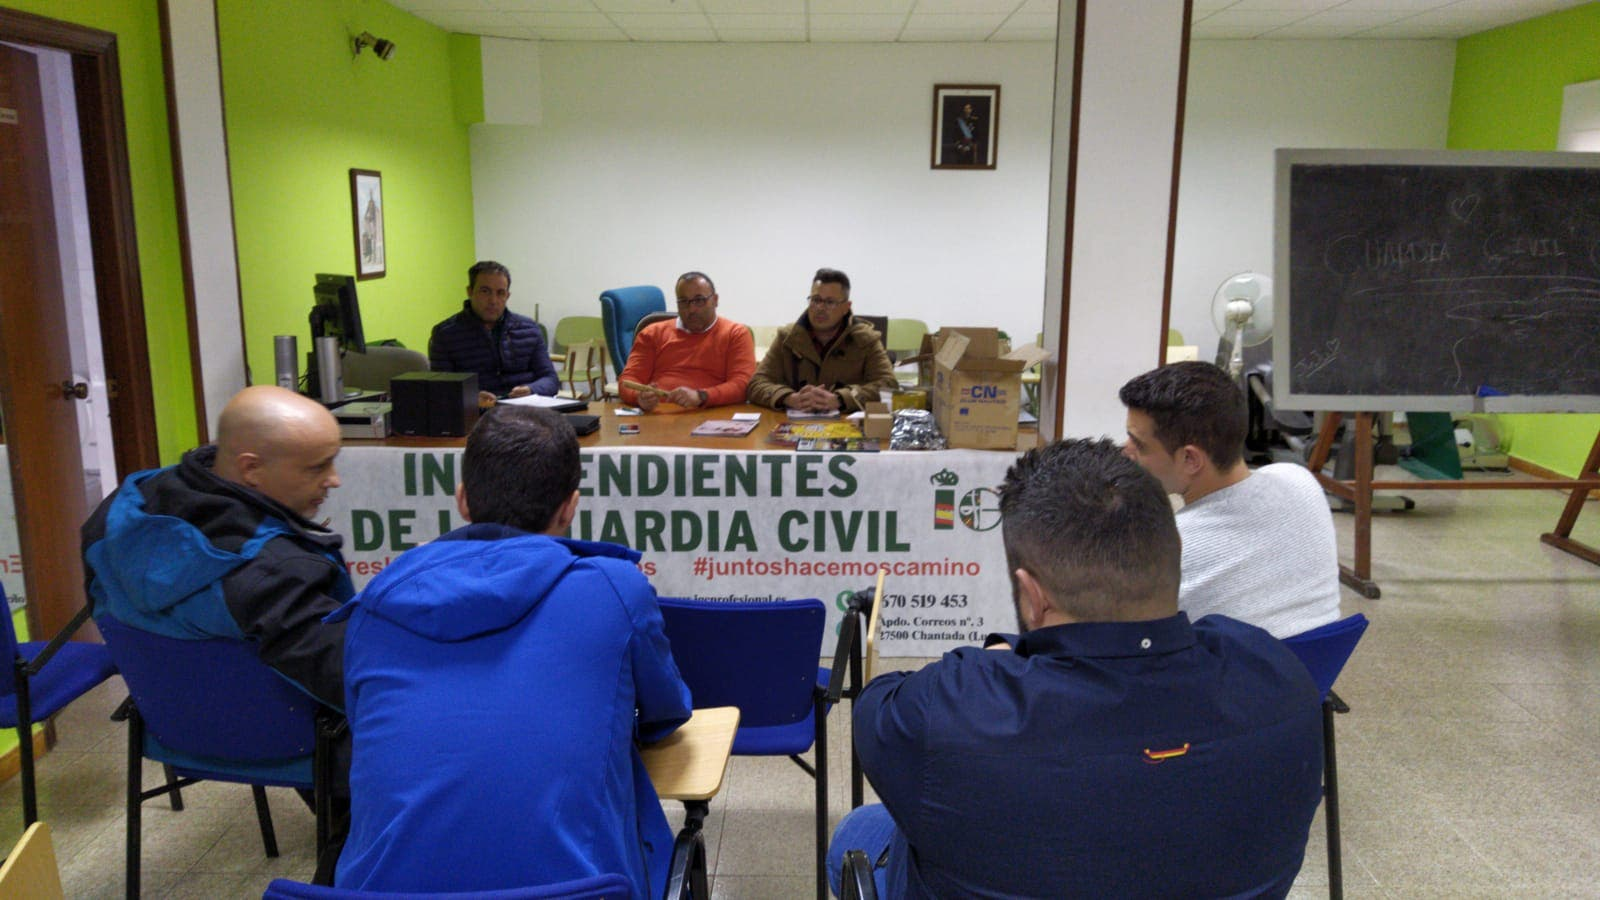 Asamblea en Lugo de Guardias Civiles de Independientes de la Guardia Civil --IGC-